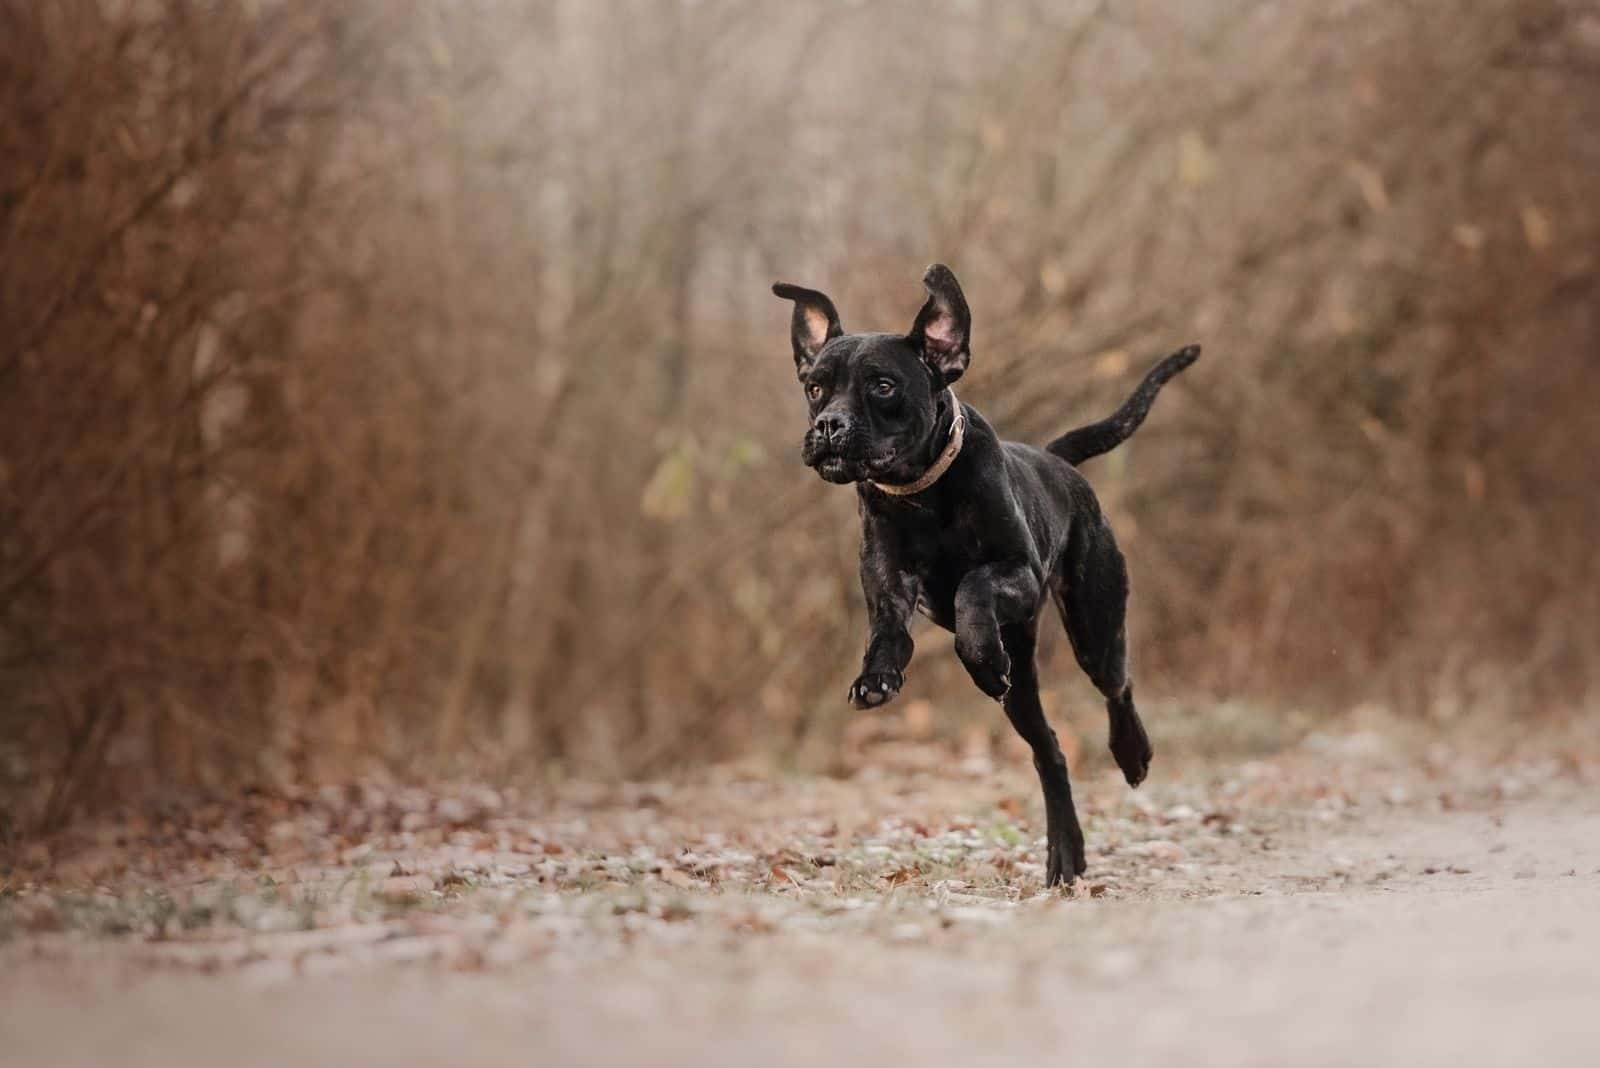 cane corso dog running in the forest